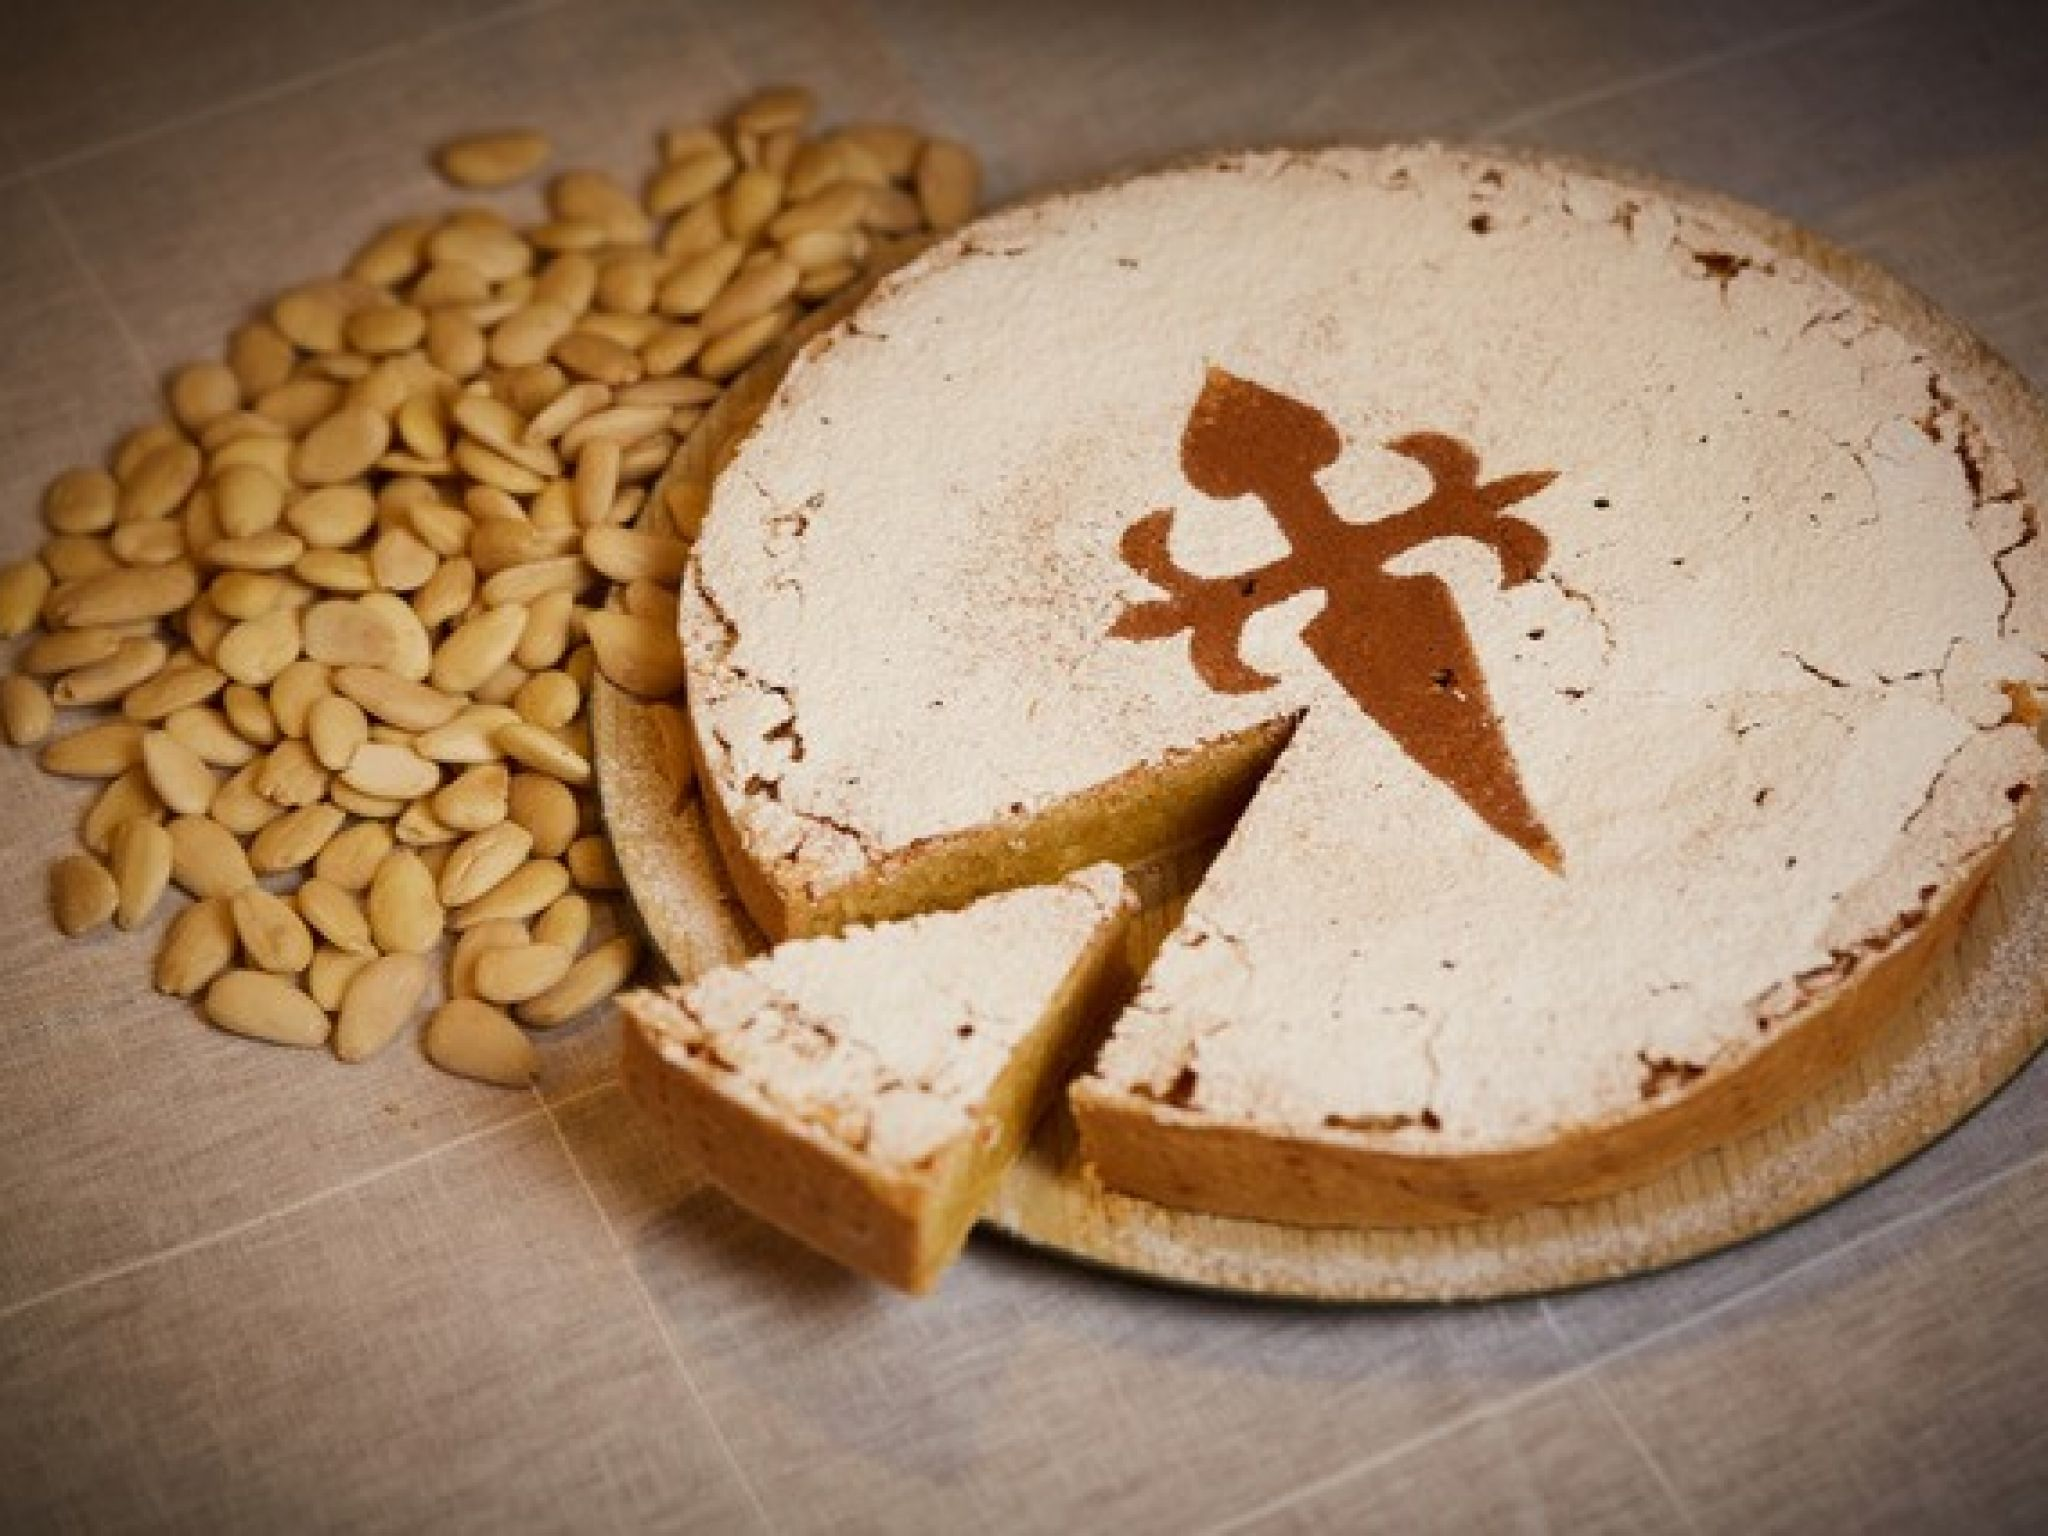 The authentic St. James Almond Cake (1,5Kg)